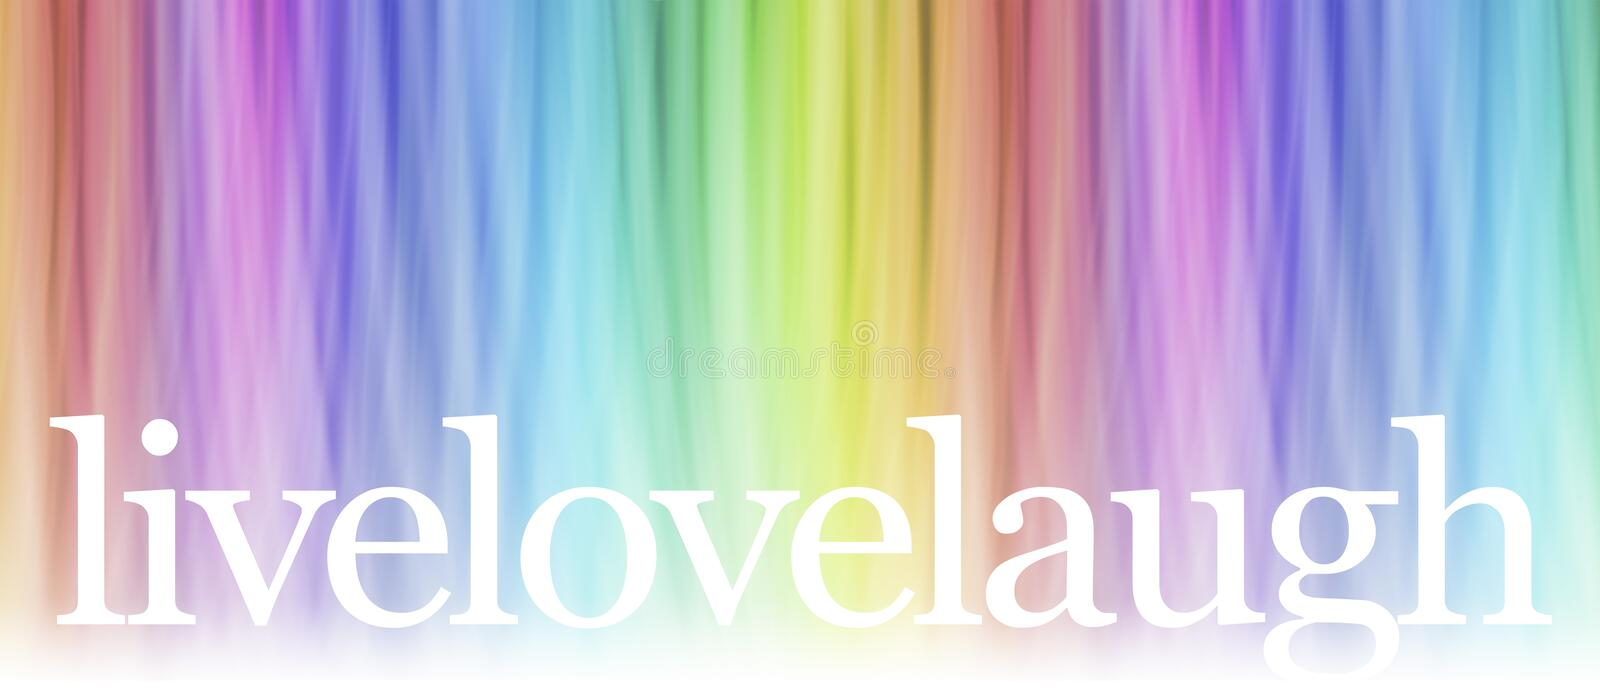 Live Laugh Love Message Banner stock photo